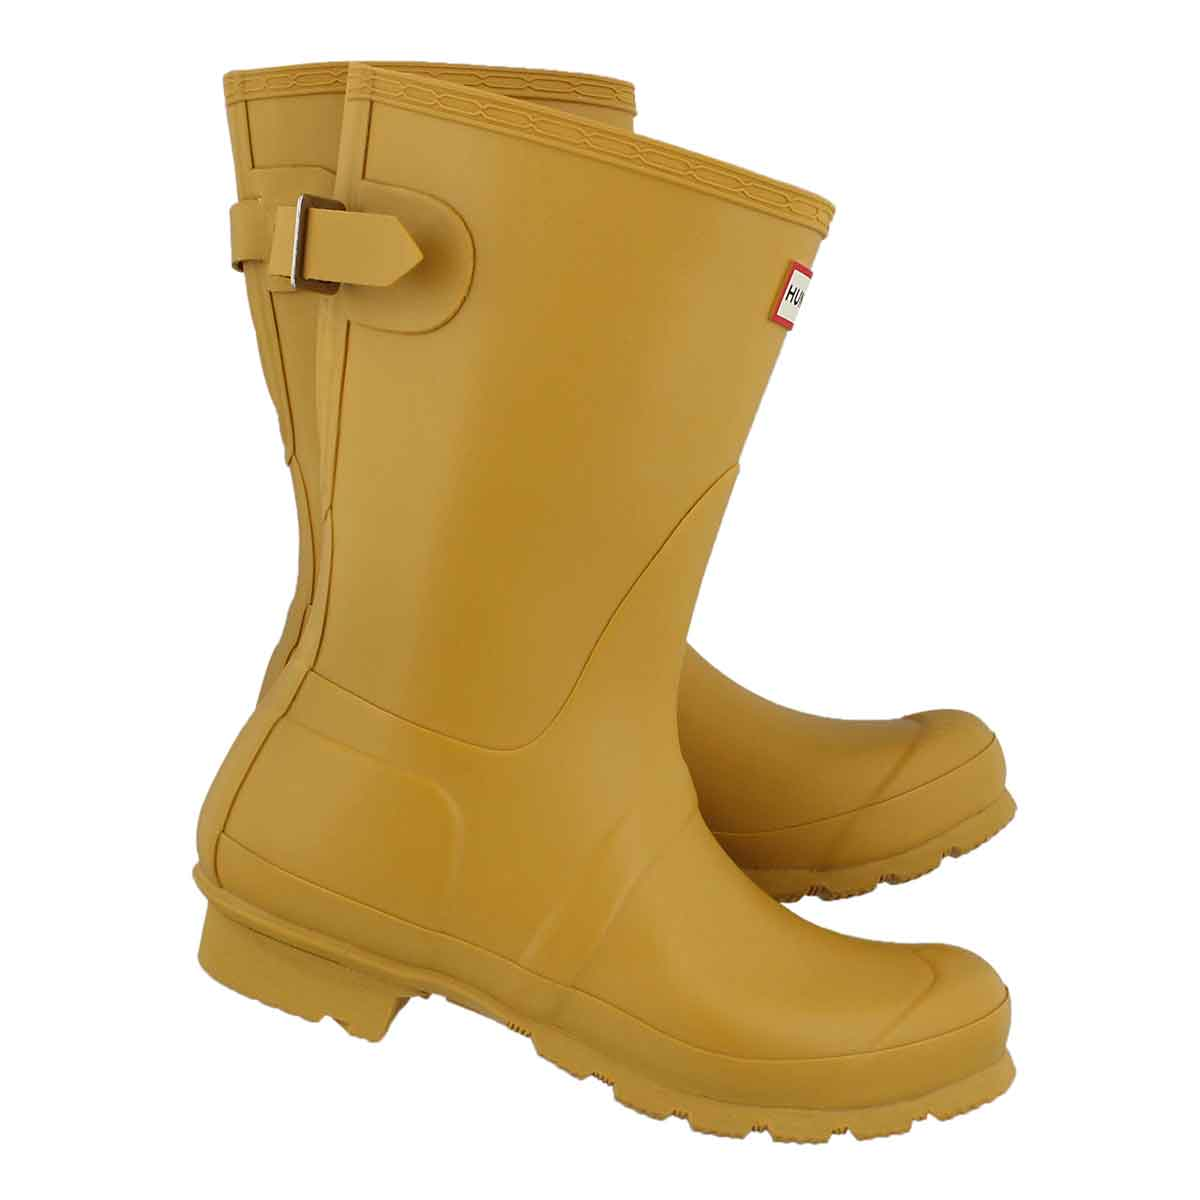 Lds Org Back Adj. Shrt yellow rainboot